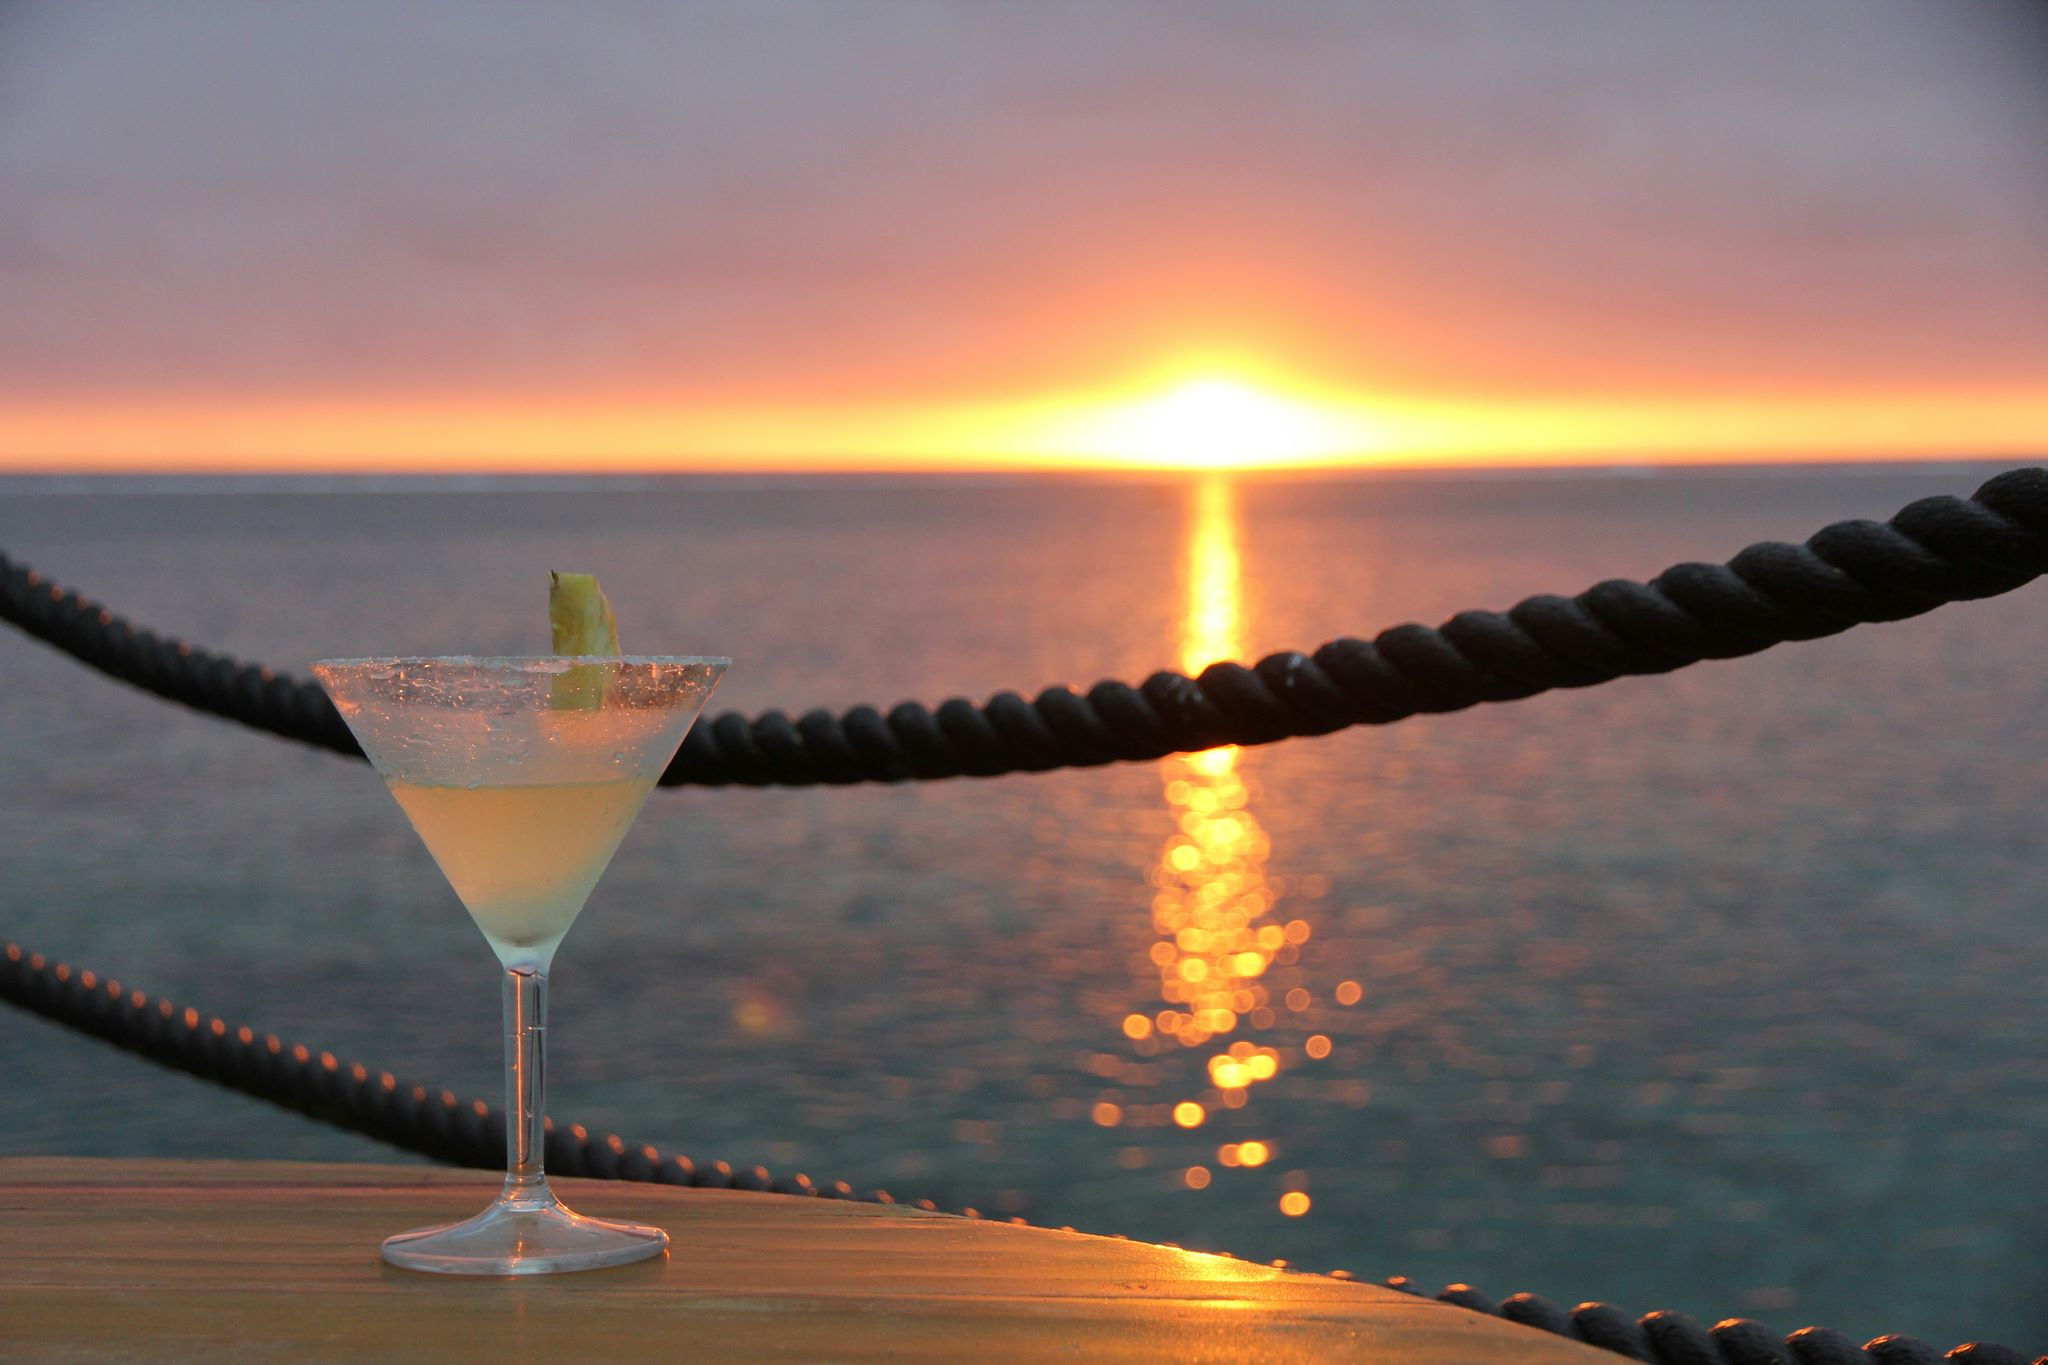 Cocktails while on retreat